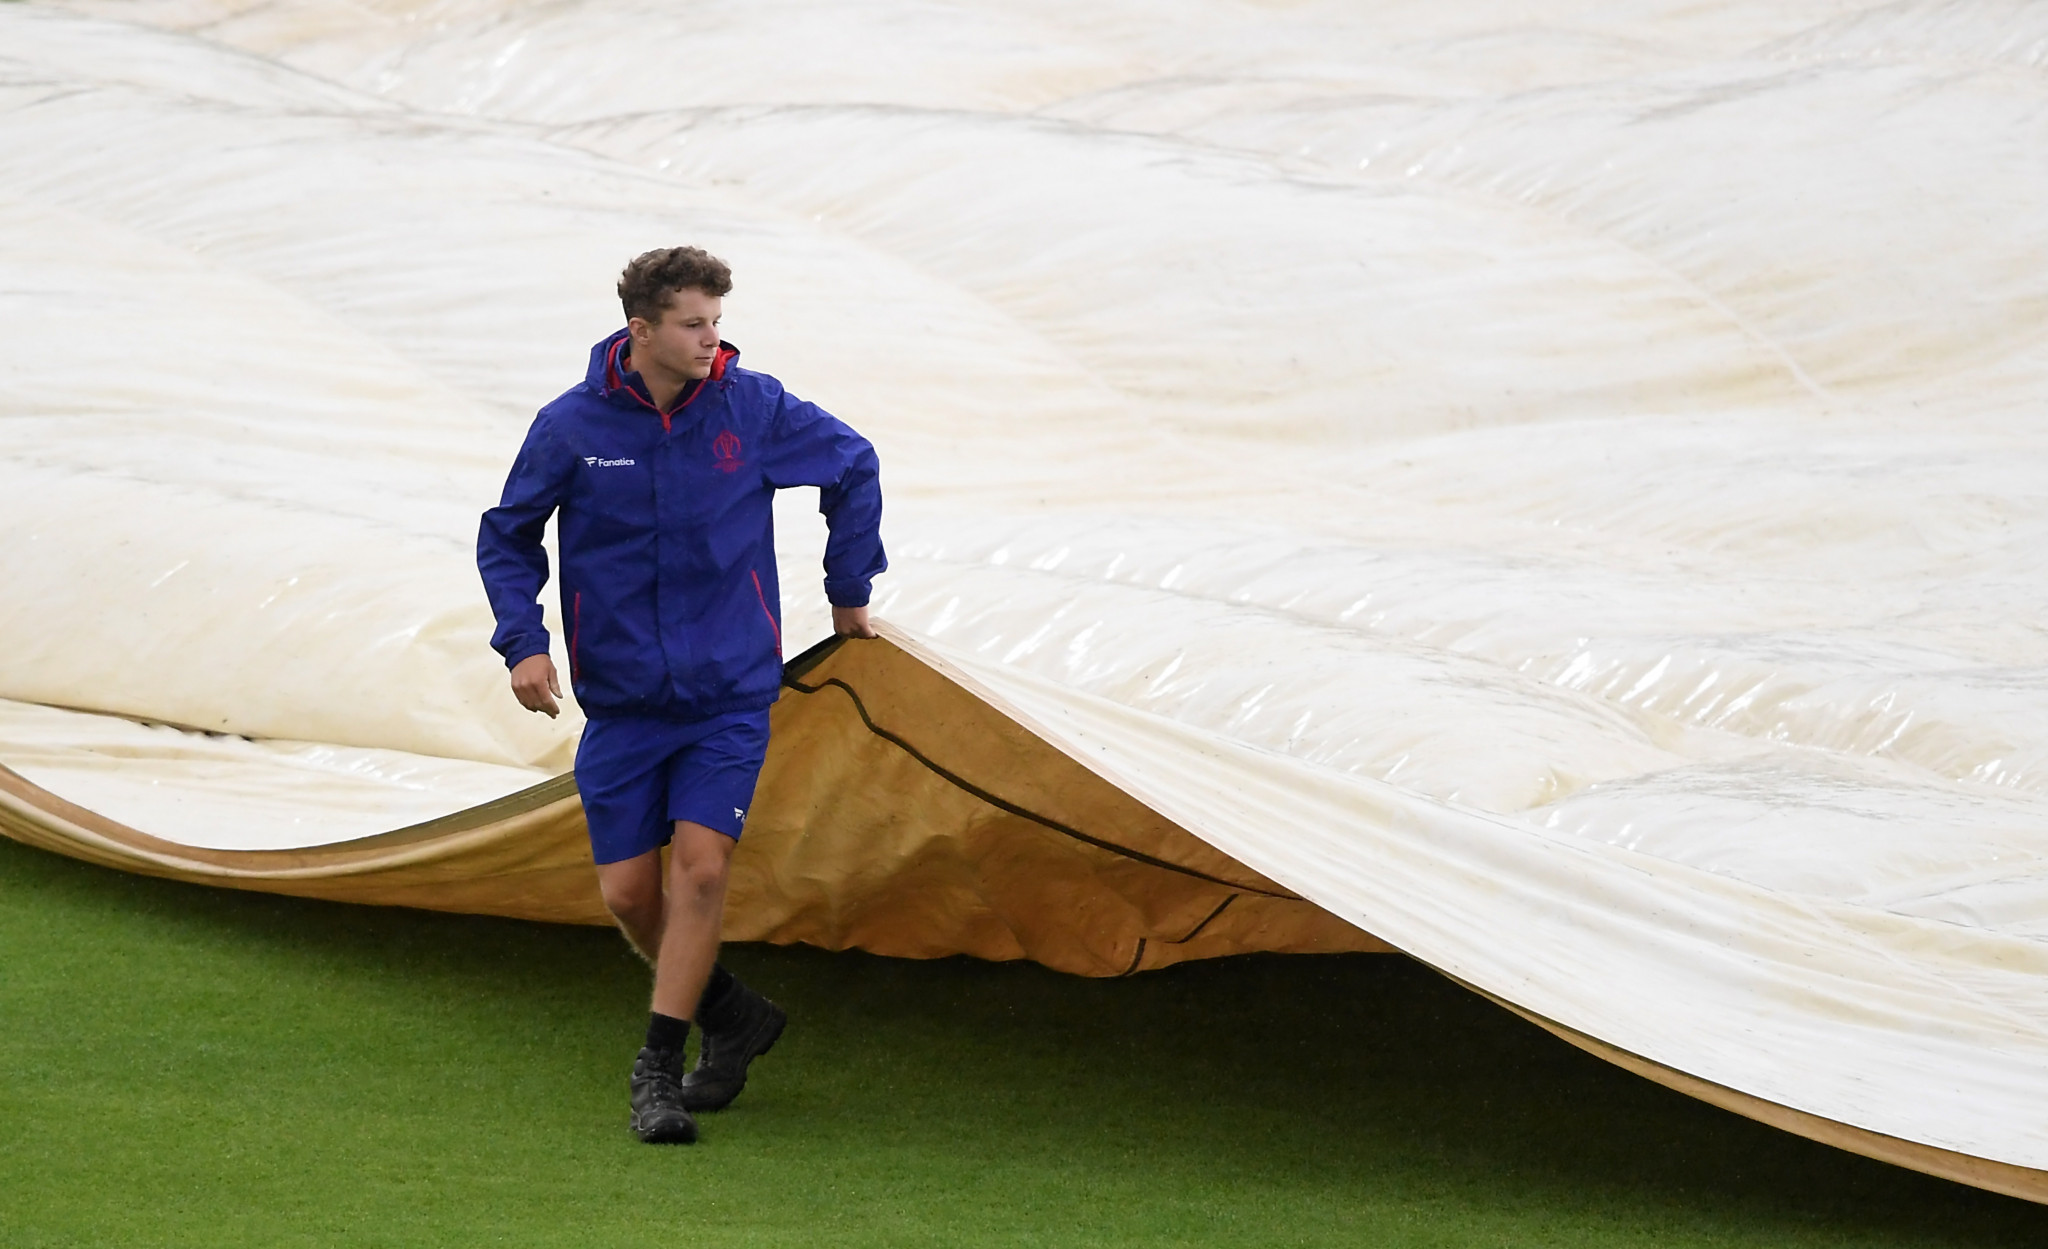 The covers briefly came off the pitch at Hampshire Bowl before the rain returned ©Getty Images